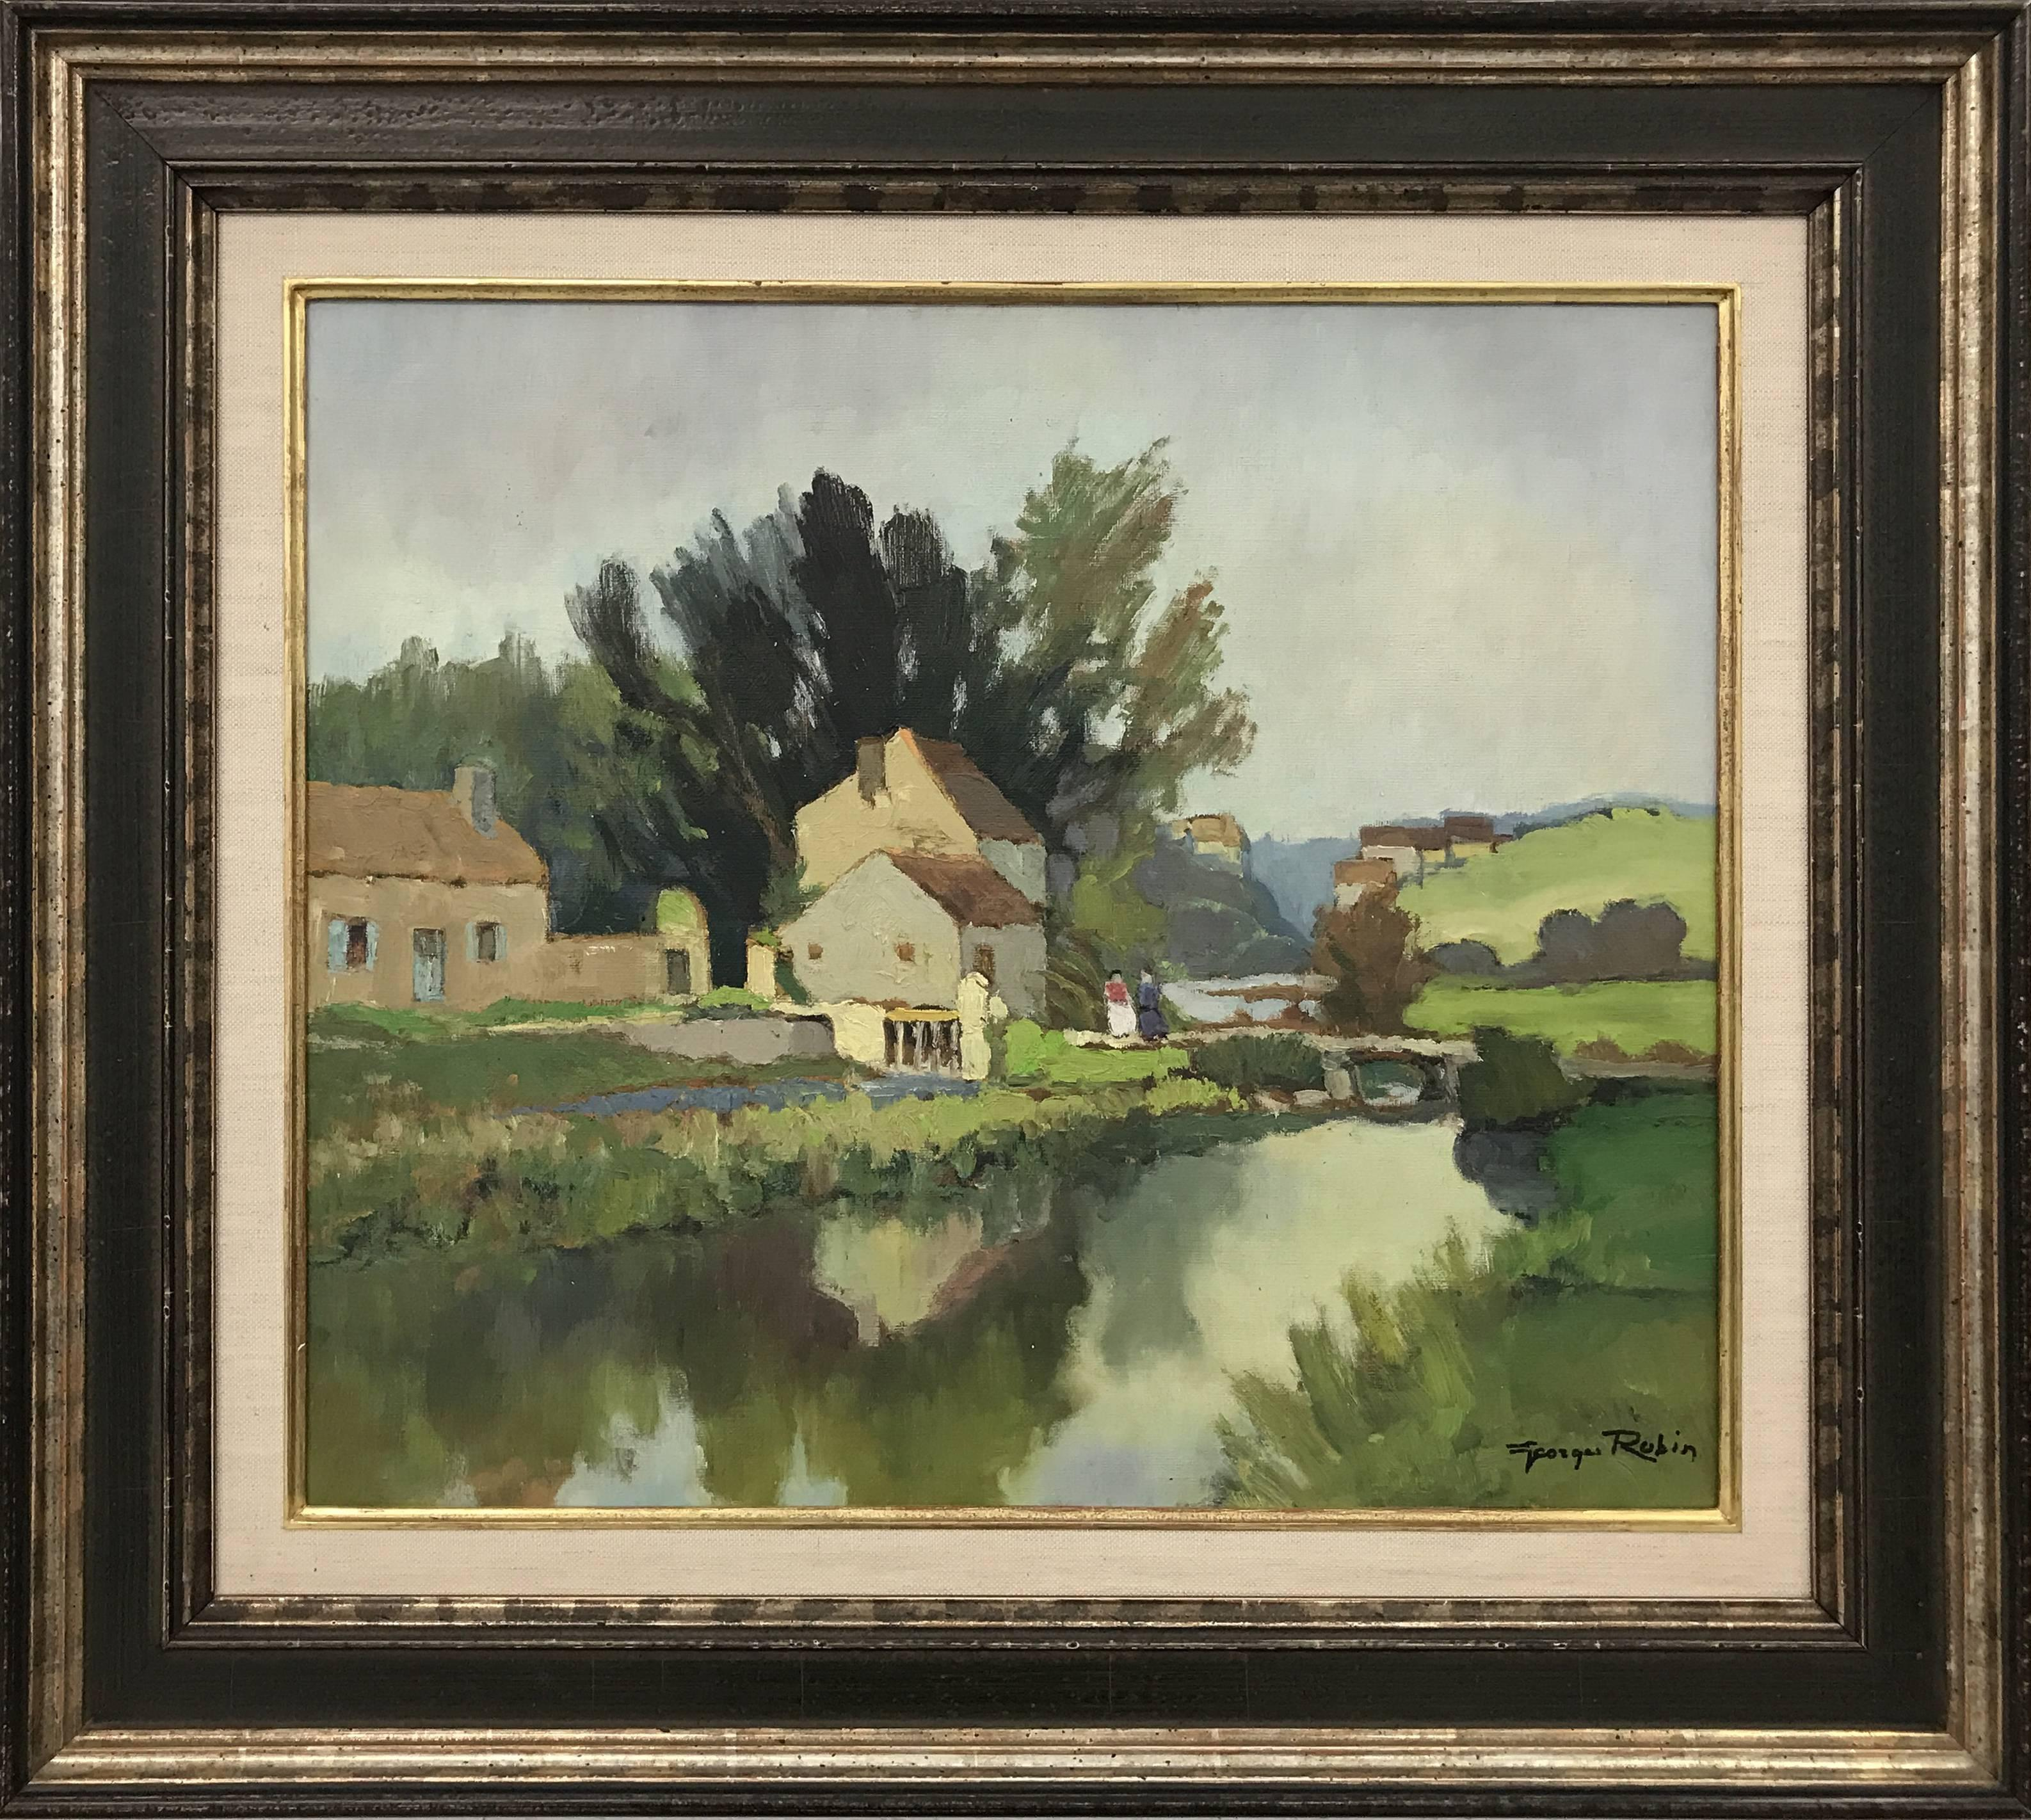 20th Century Impressionist River Landscape Oil Painting by French Modern Artist